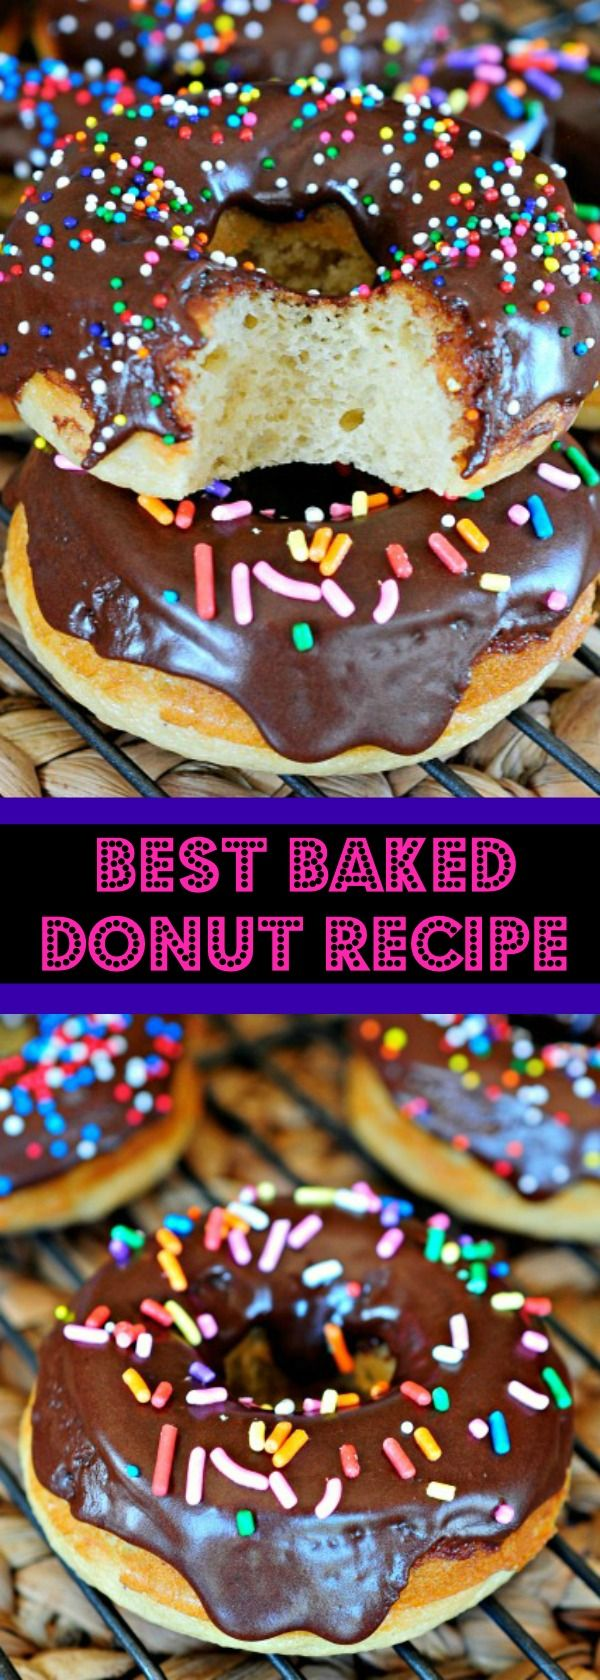 Best Baked Donut Recipe